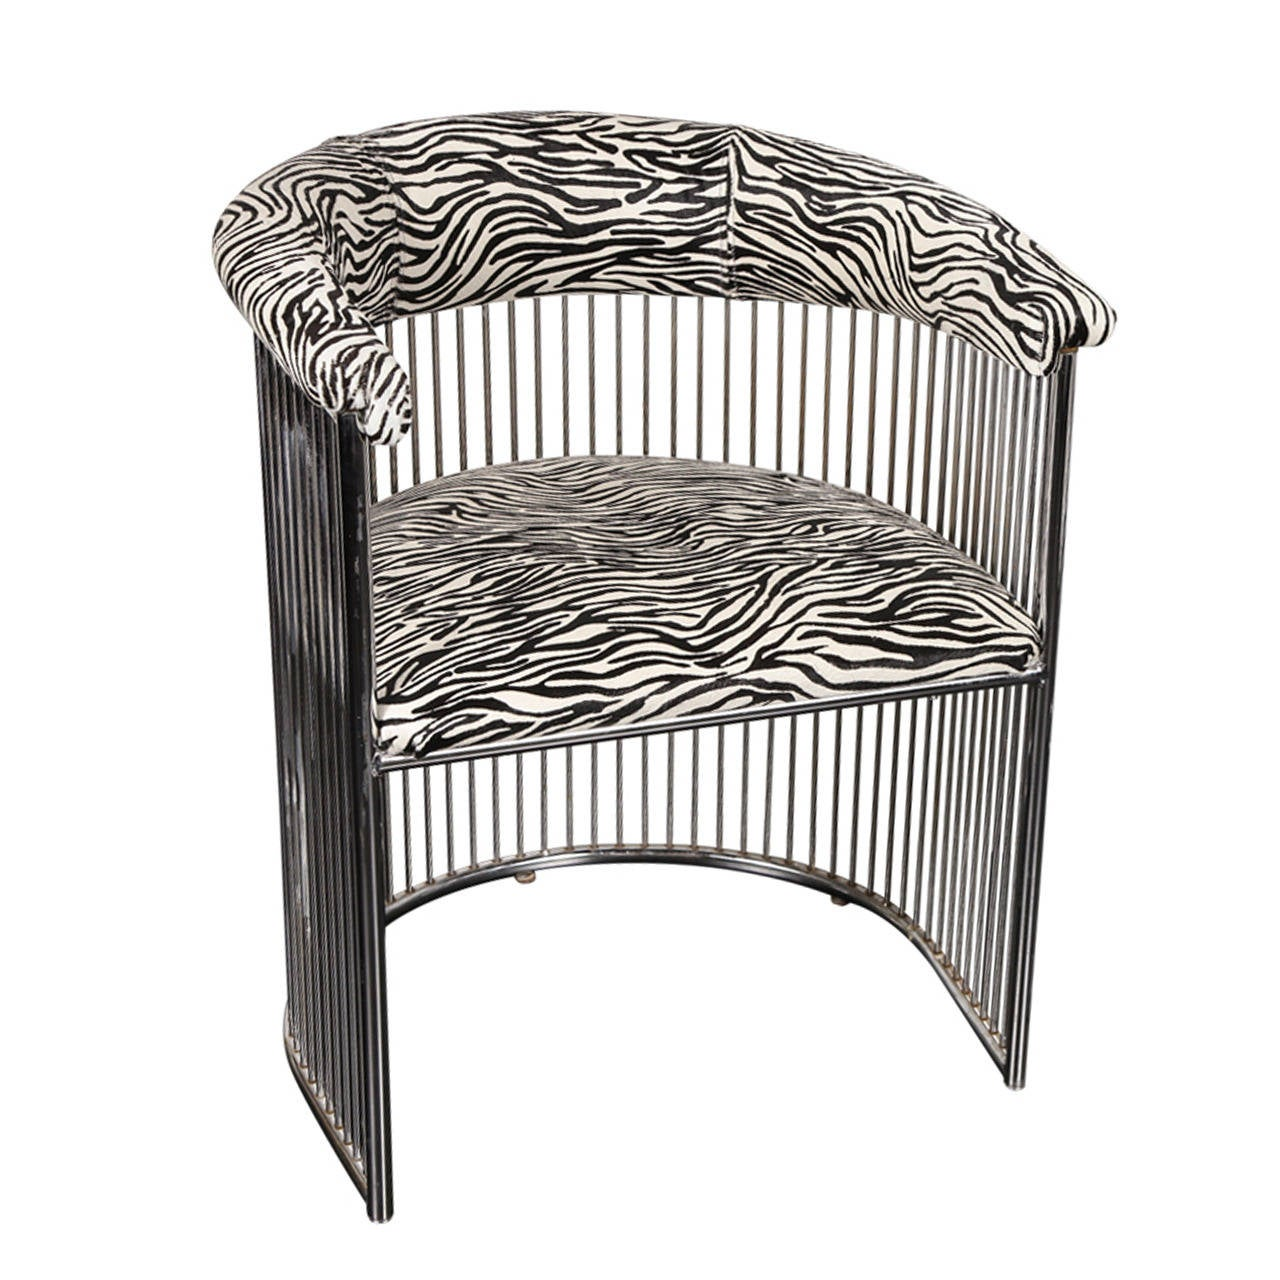 A 1960 s Chrome and Zebra Print Chair at 1stdibs